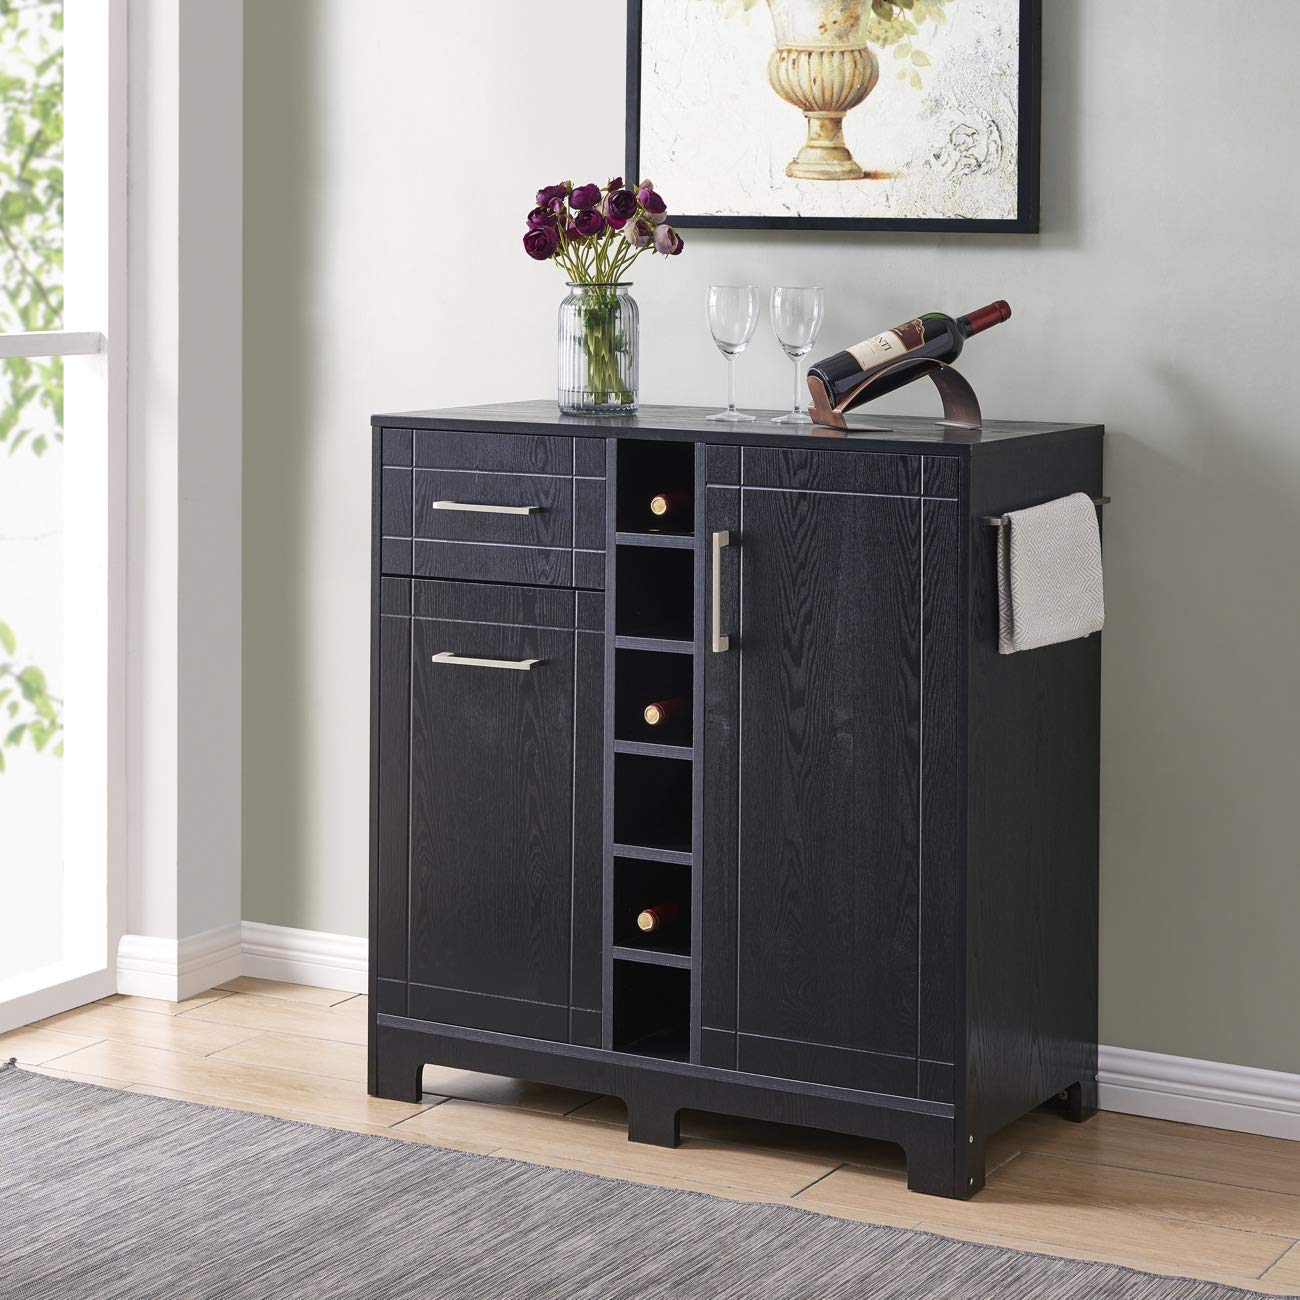 BELLEZE Vietti Bar Cabinet for Liquor and Wine Bottle Storage with Metal Handle Drawers in Black Oak by Belleze